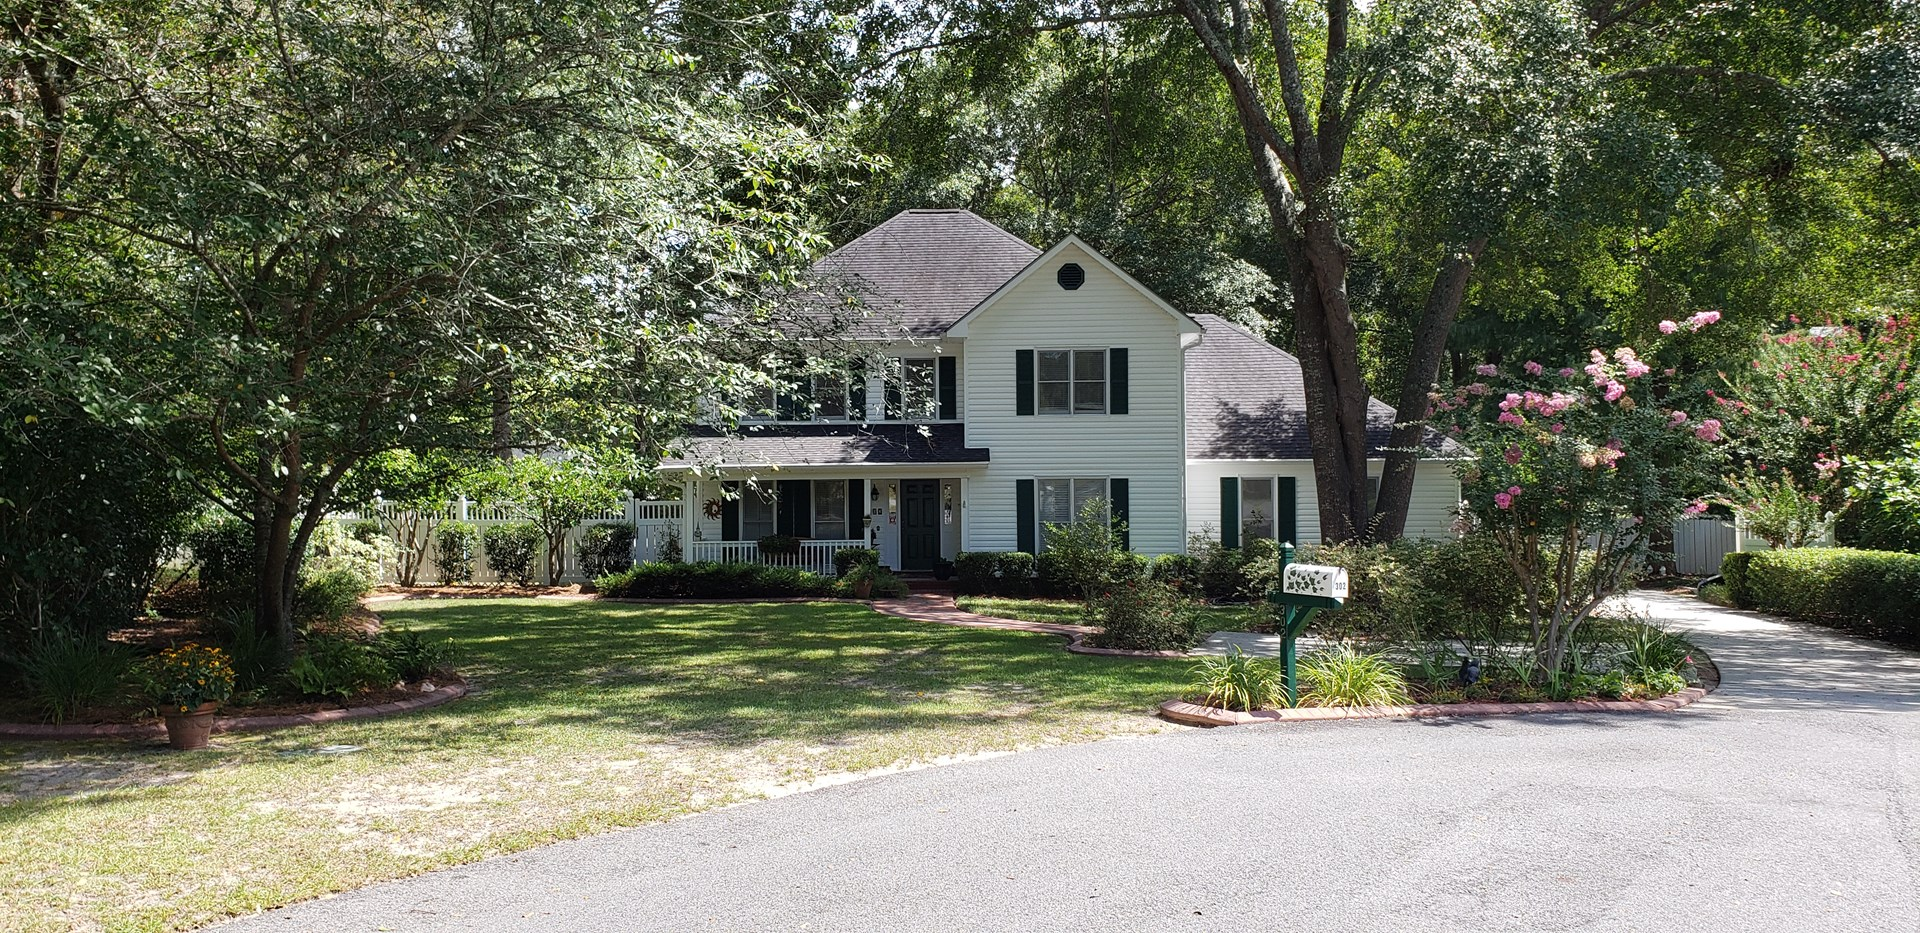 4 BR/2.5 BA on Private Cul De Sac in Bulloch County